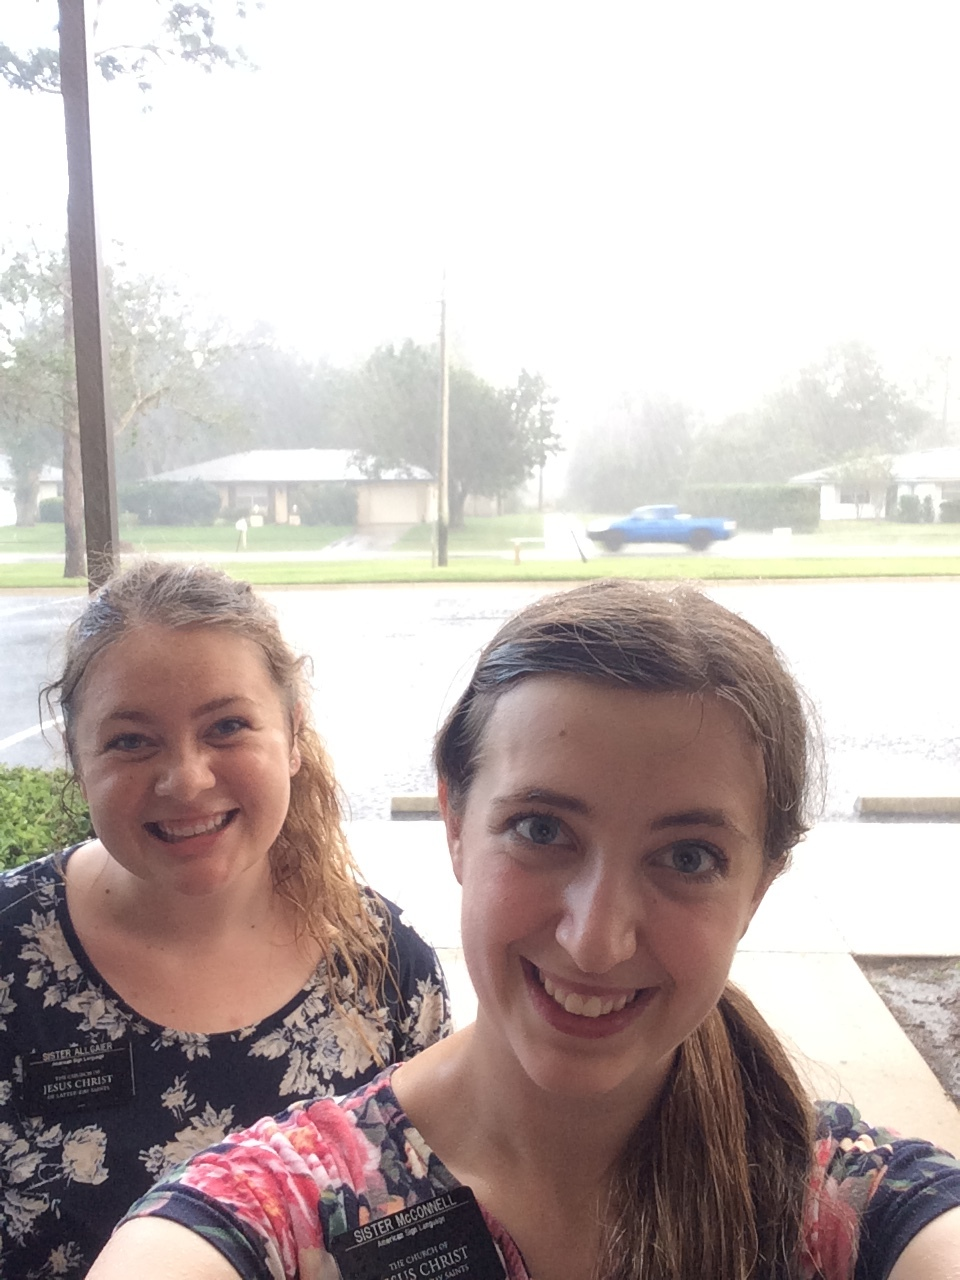 We got rained on...what else is new?